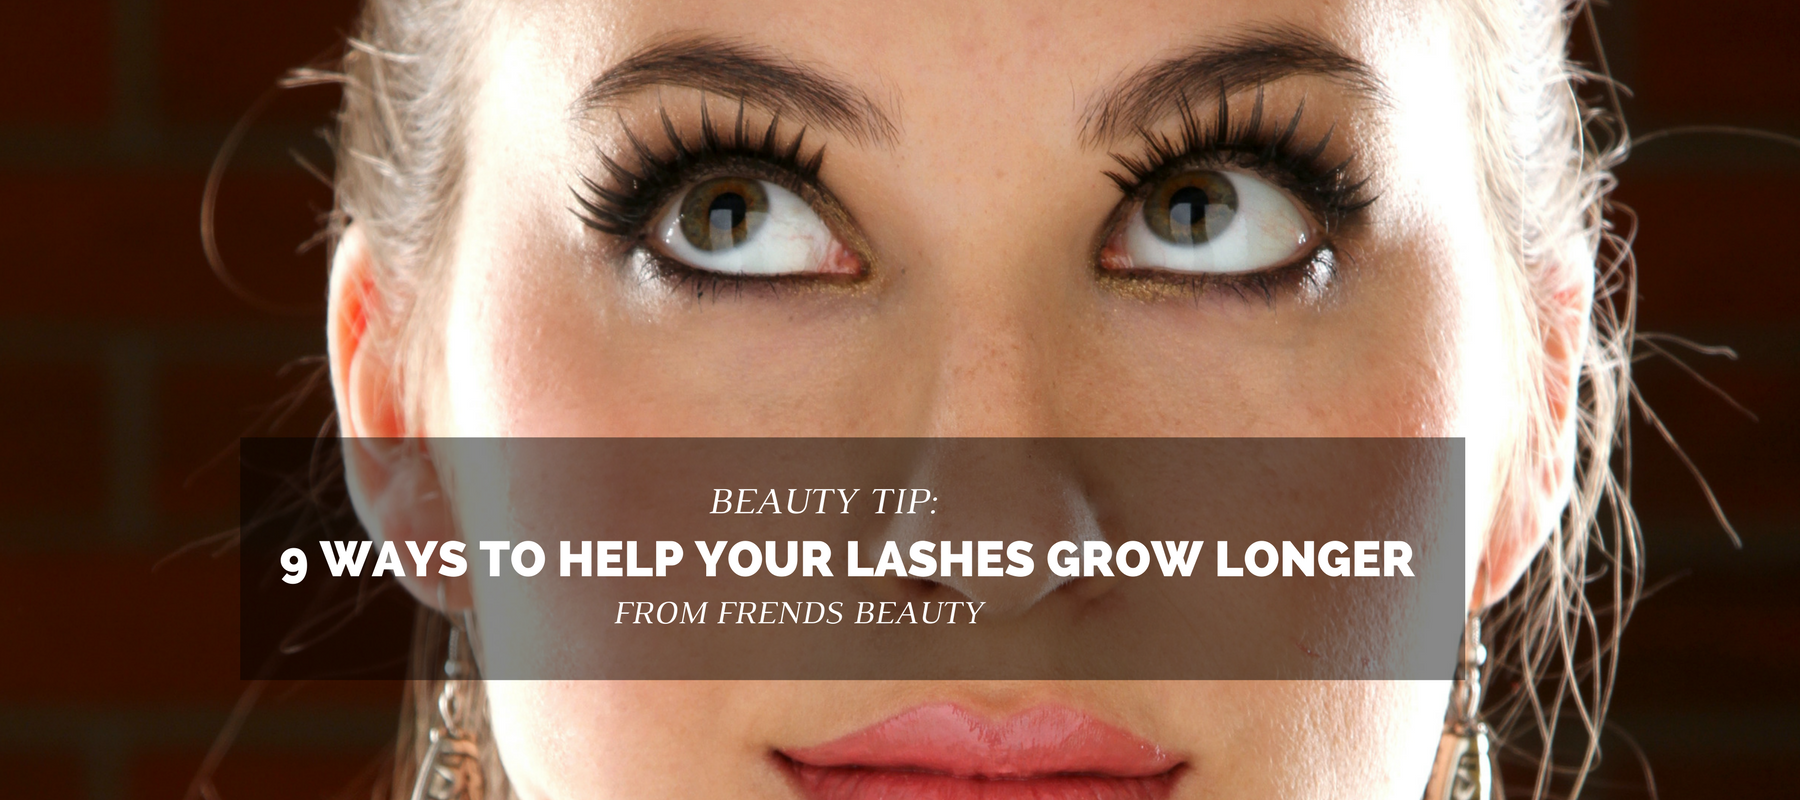 how to make your lashes grow longer